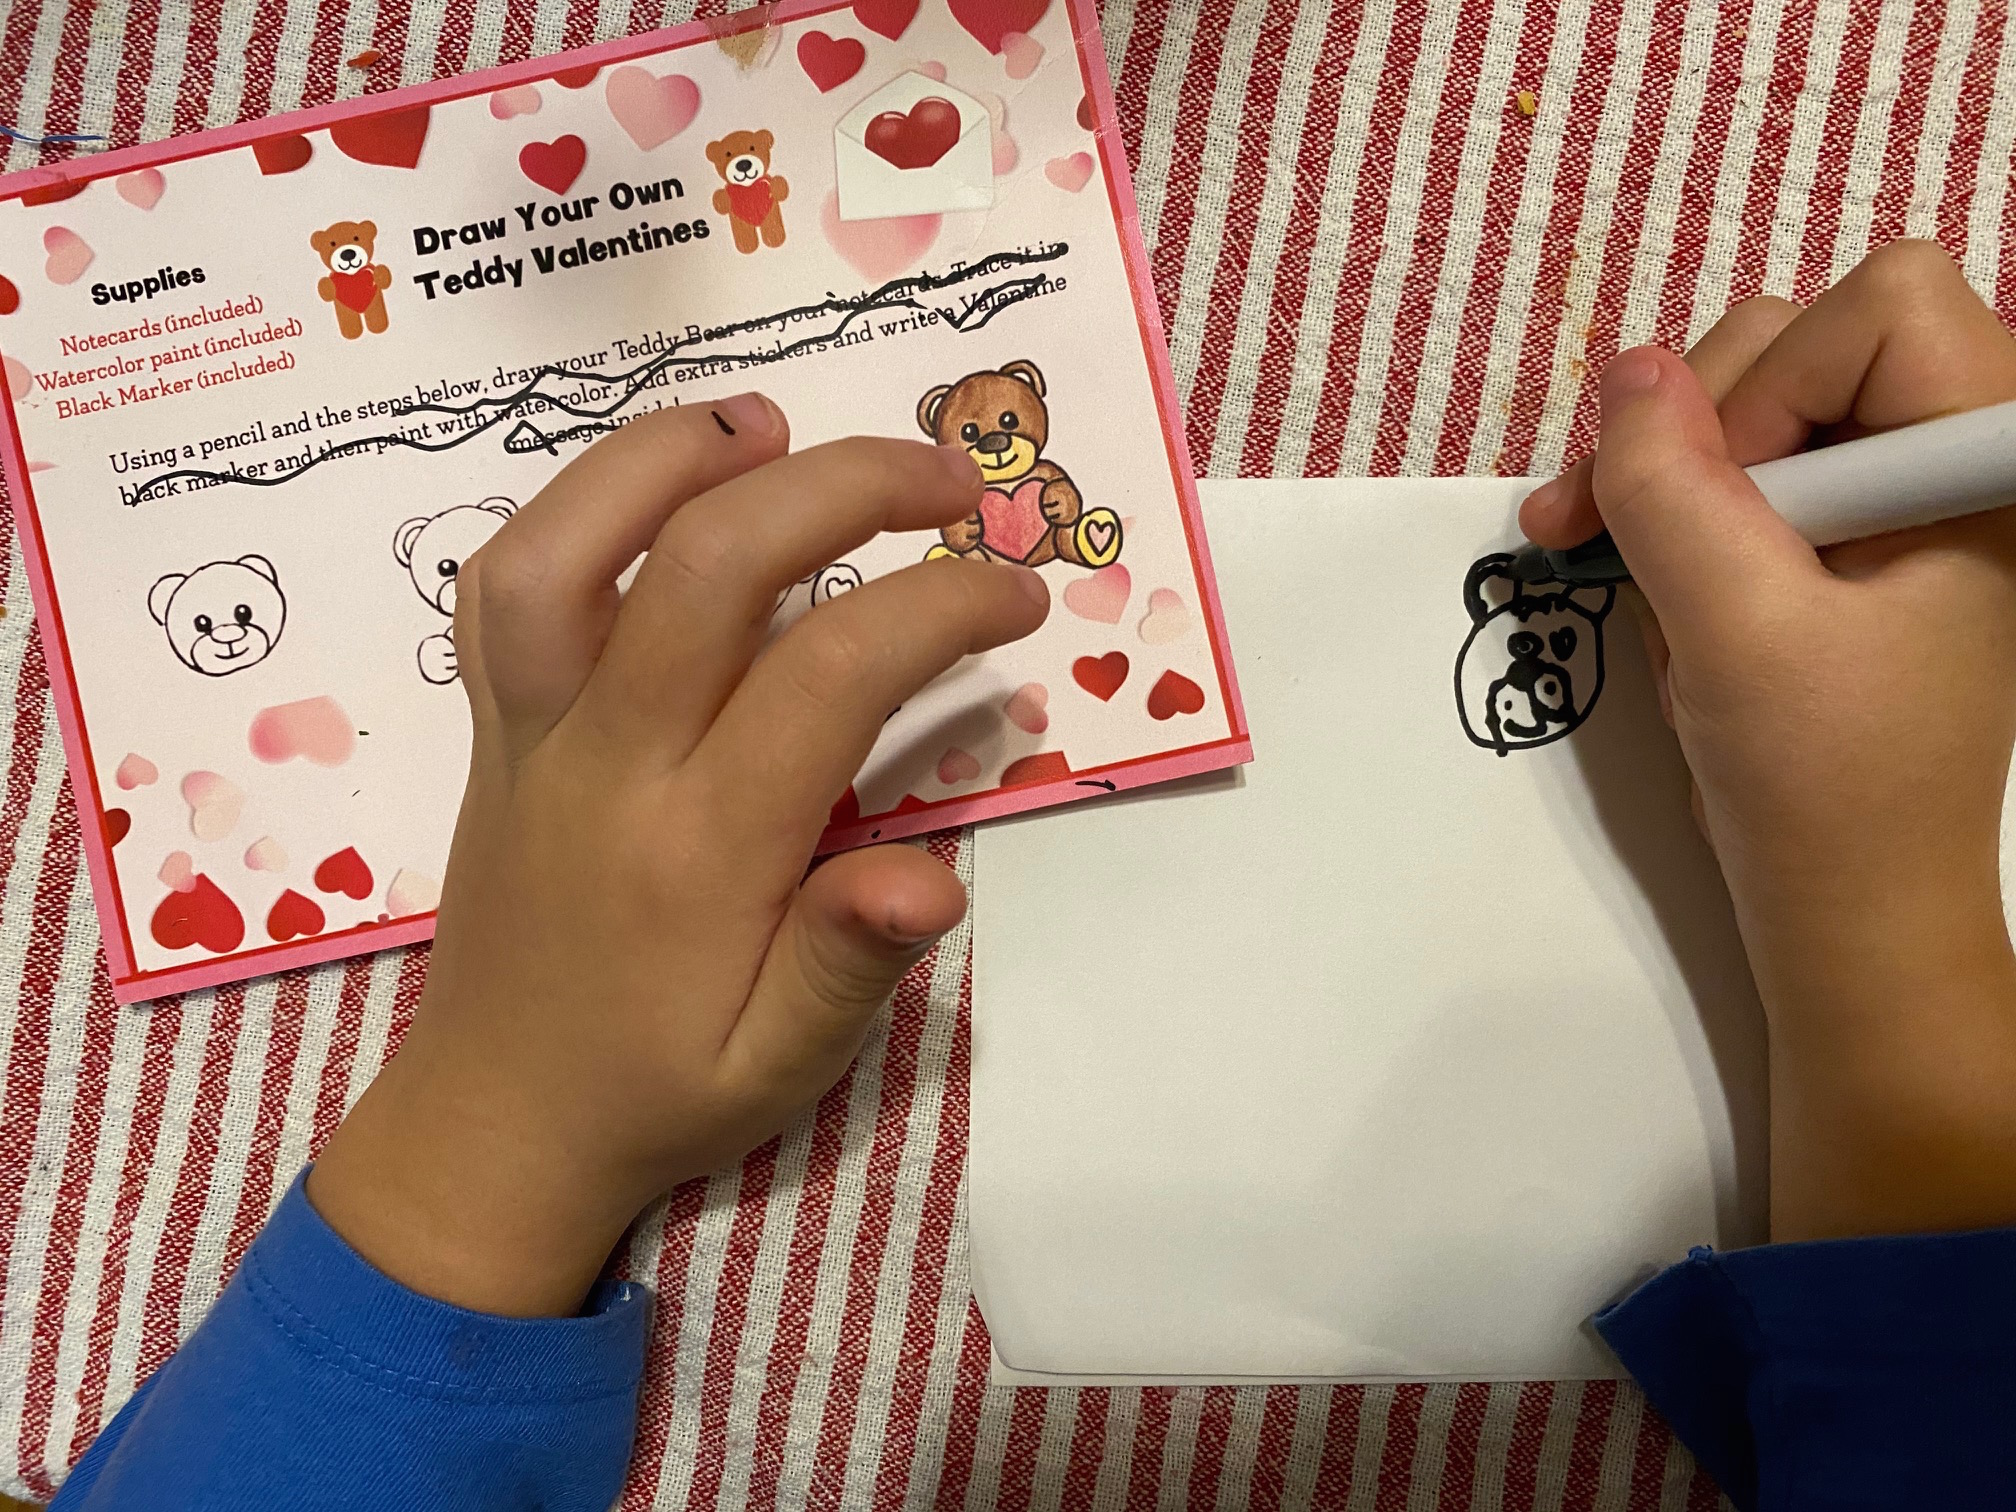 e Valentine's Day cards using their teddy bear I am a Chef too